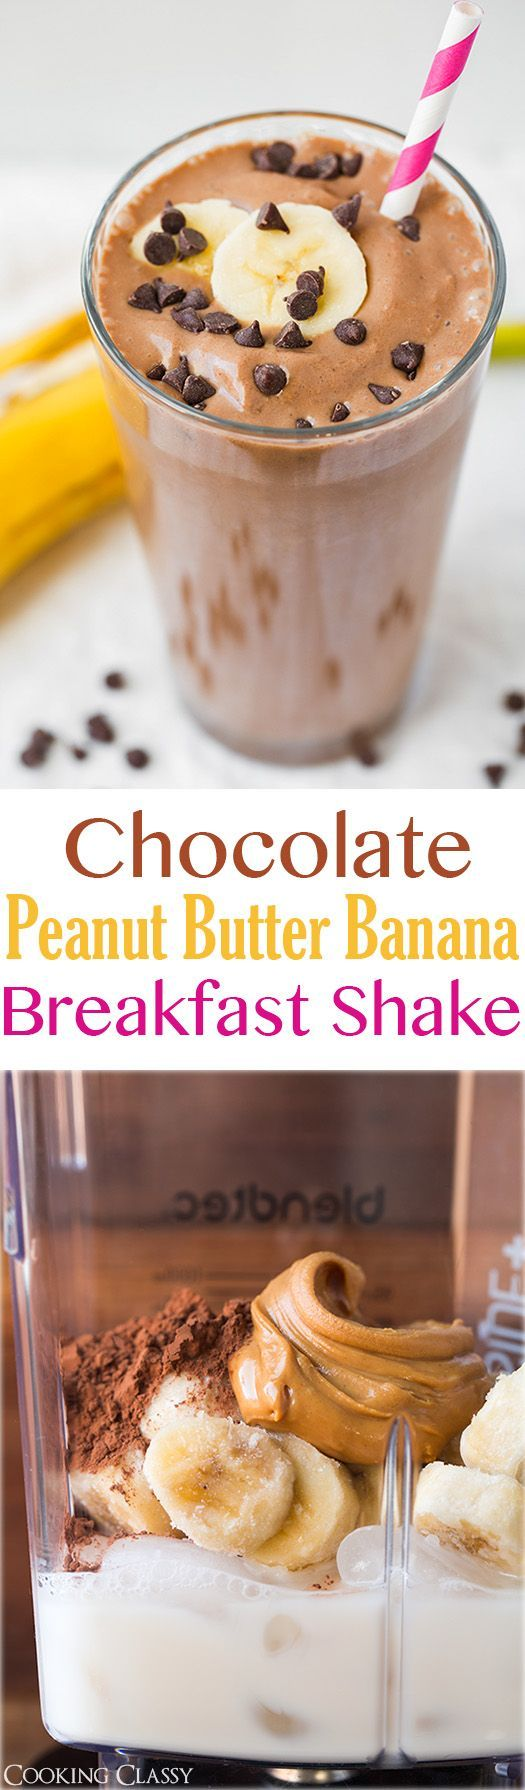 Chocolate Peanut Butter Banana Breakfast Shake - healthy easy to make and…